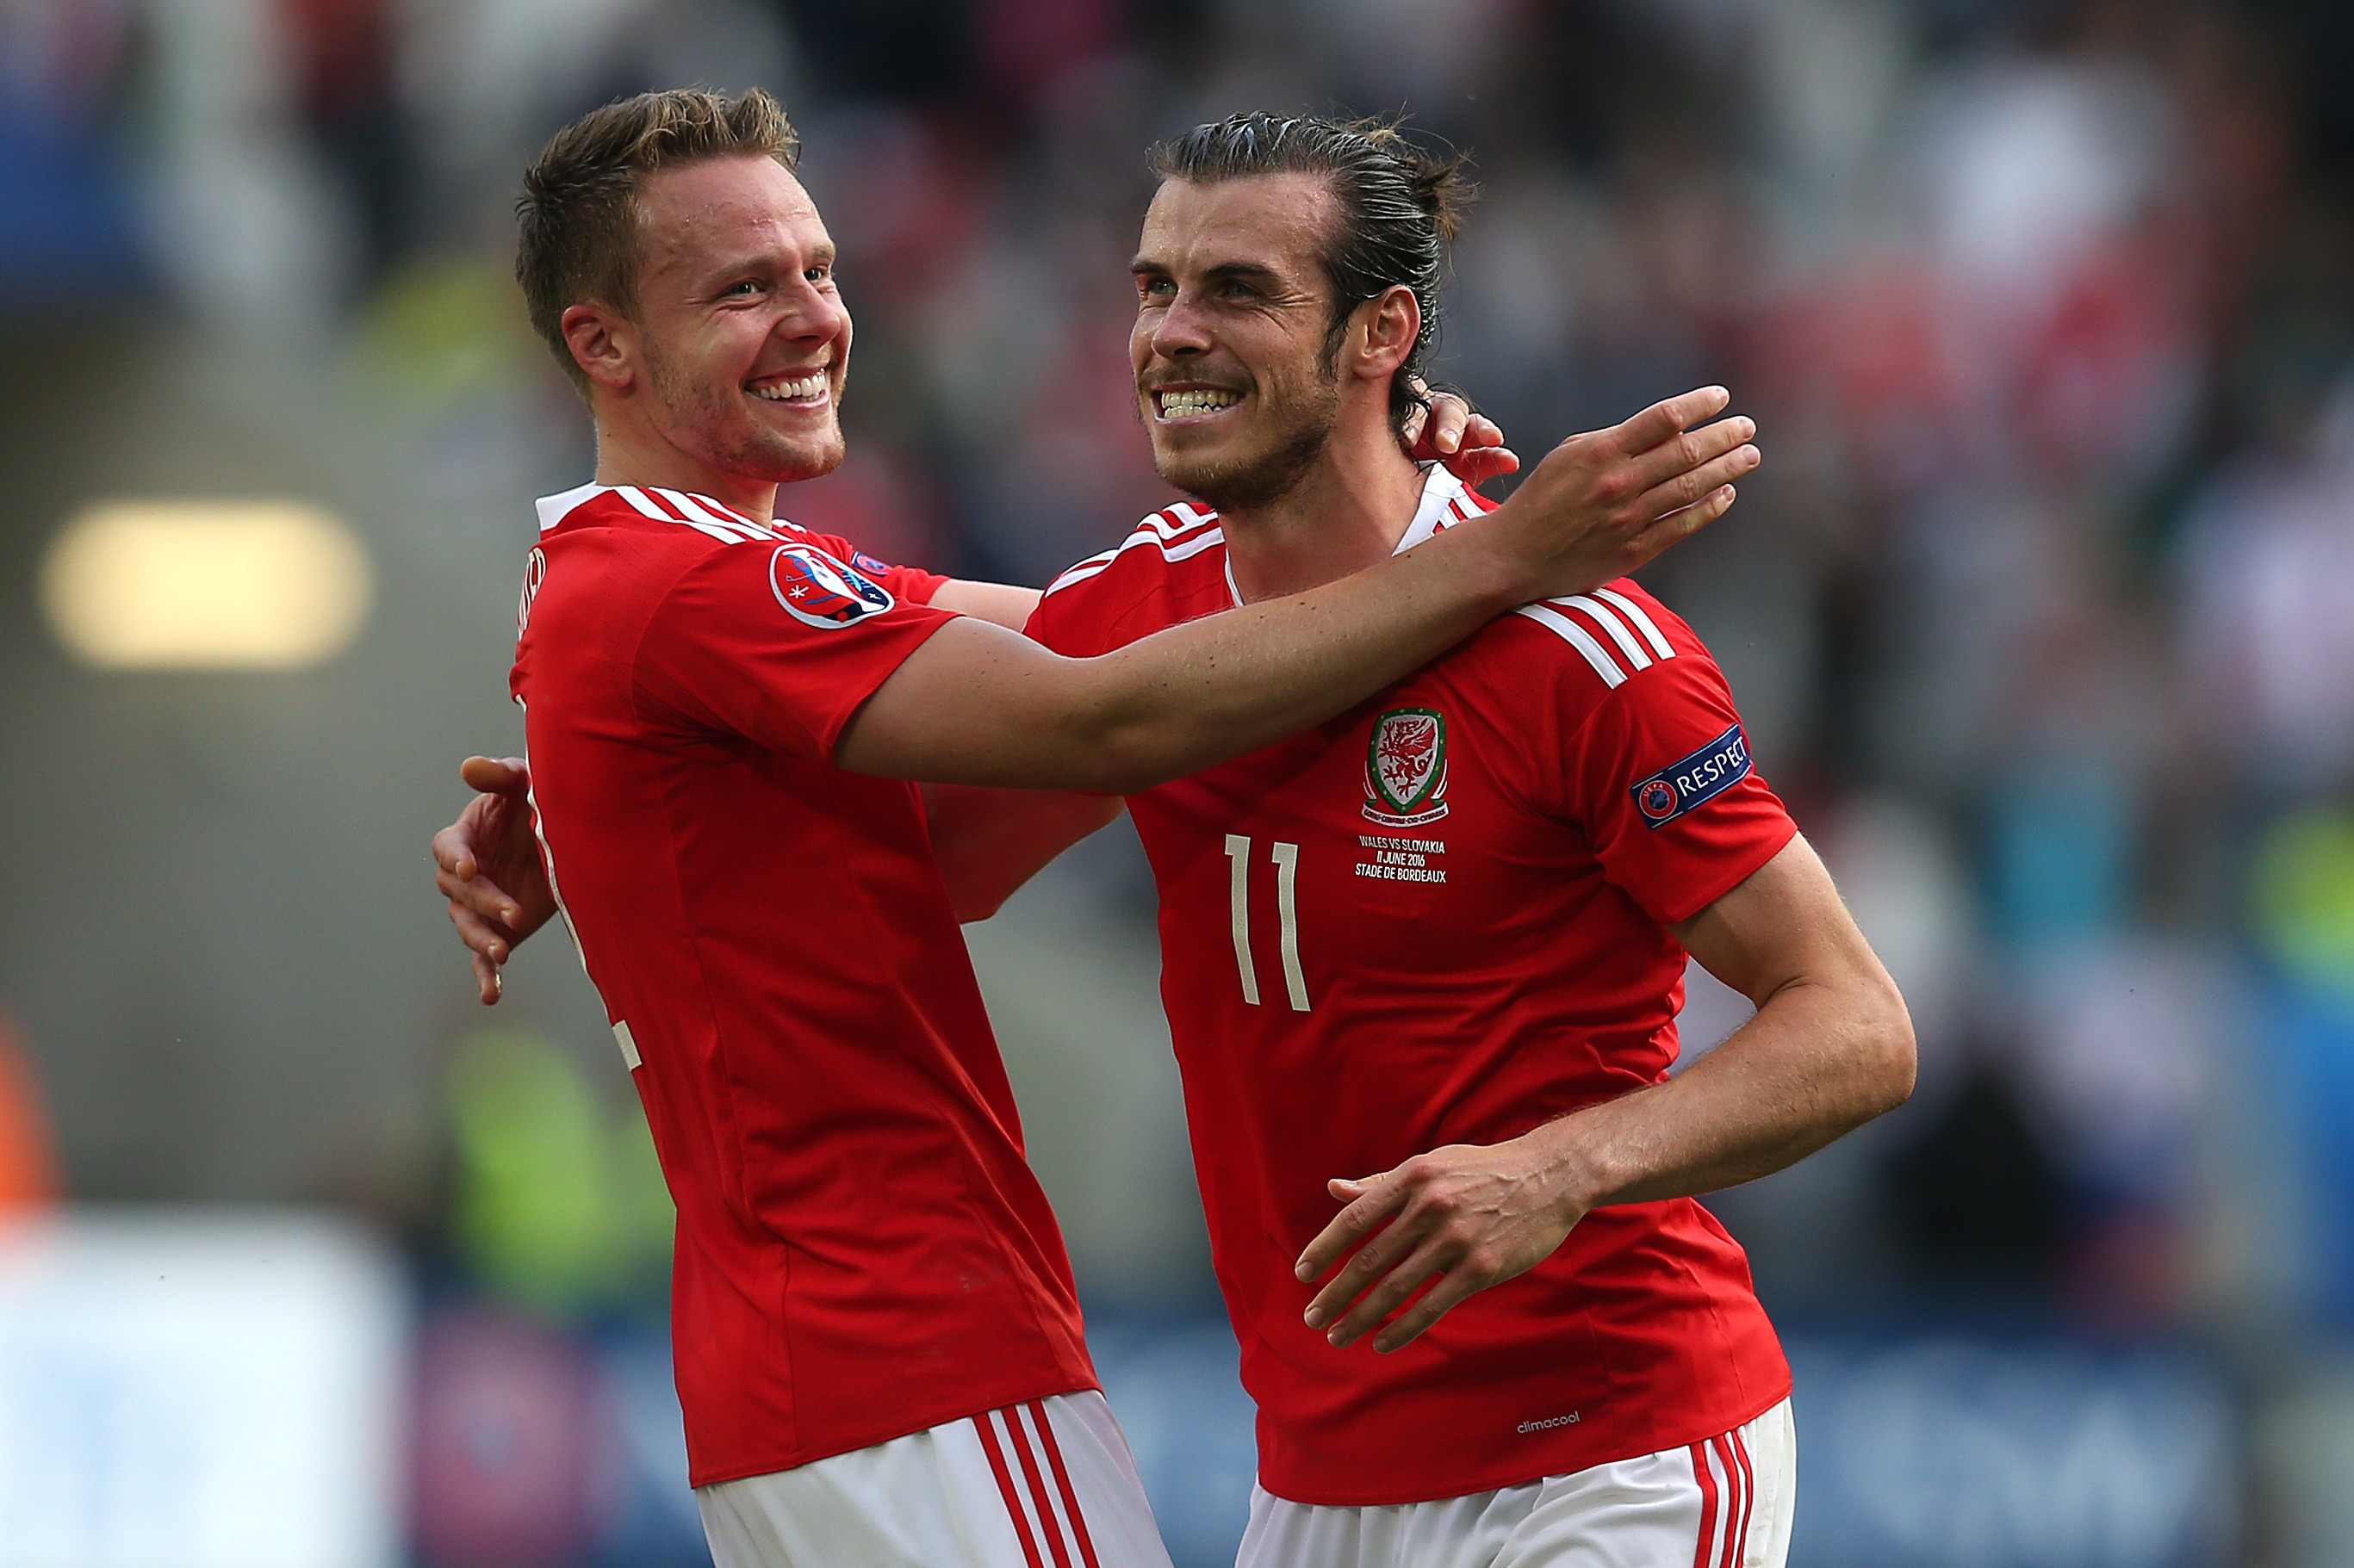 Wales, Bale make memorable return to international stage after 58-year absence